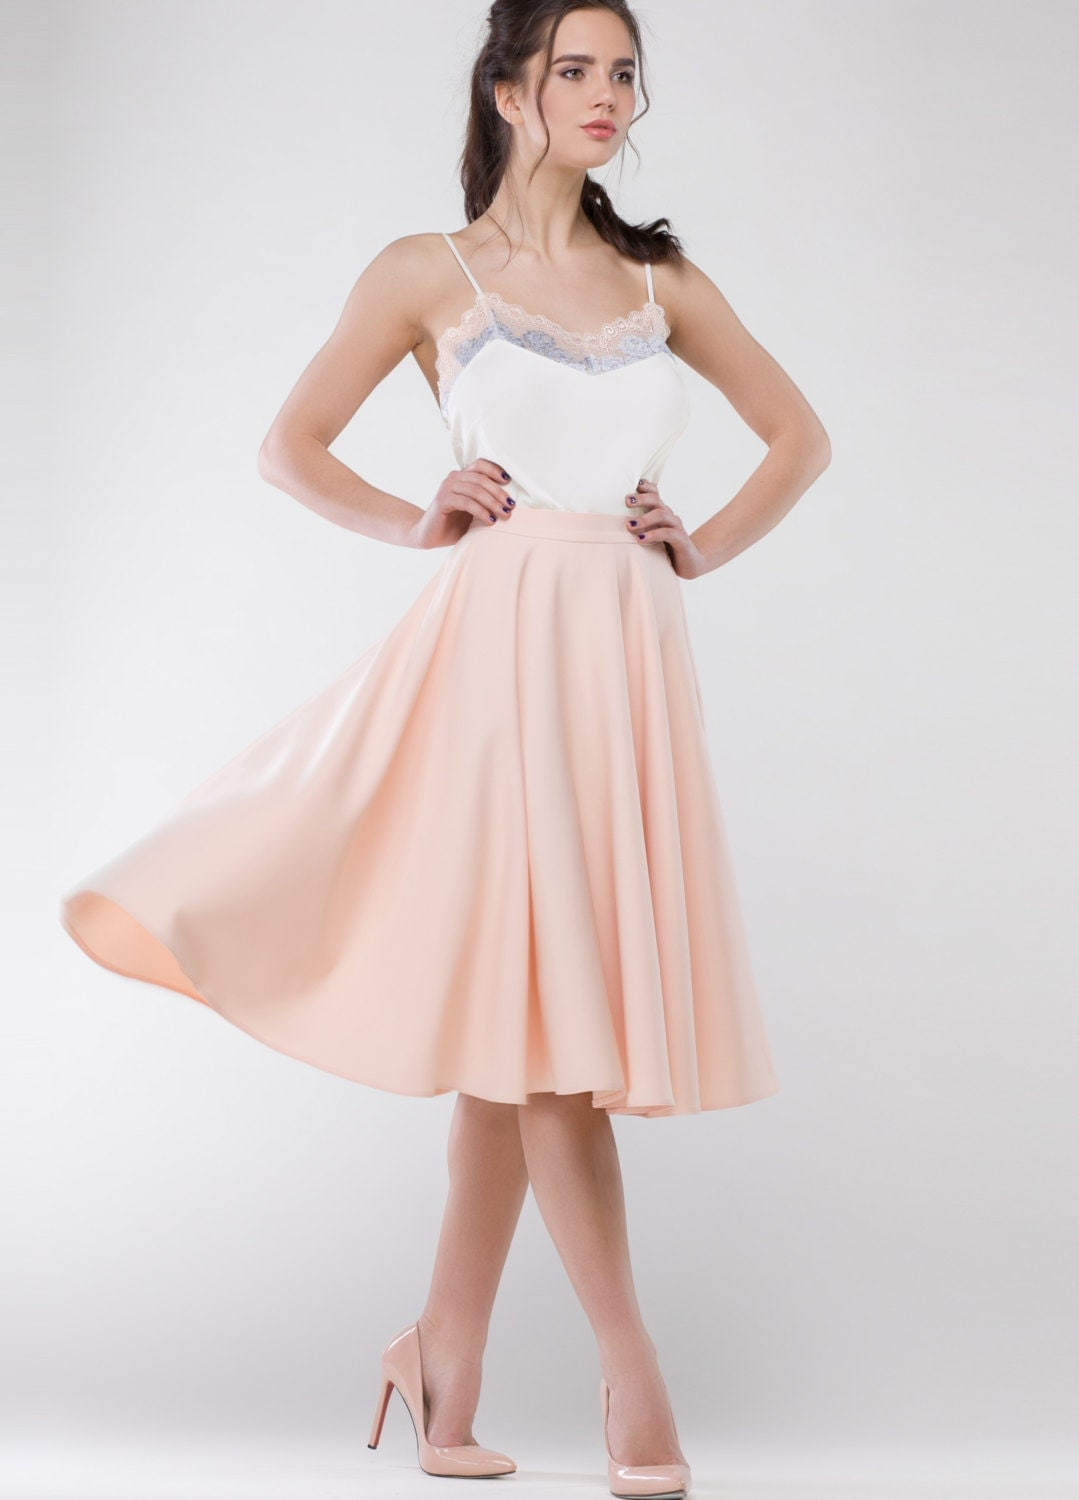 pale pink skirt crepe stretch midi by anastasiabarbouche